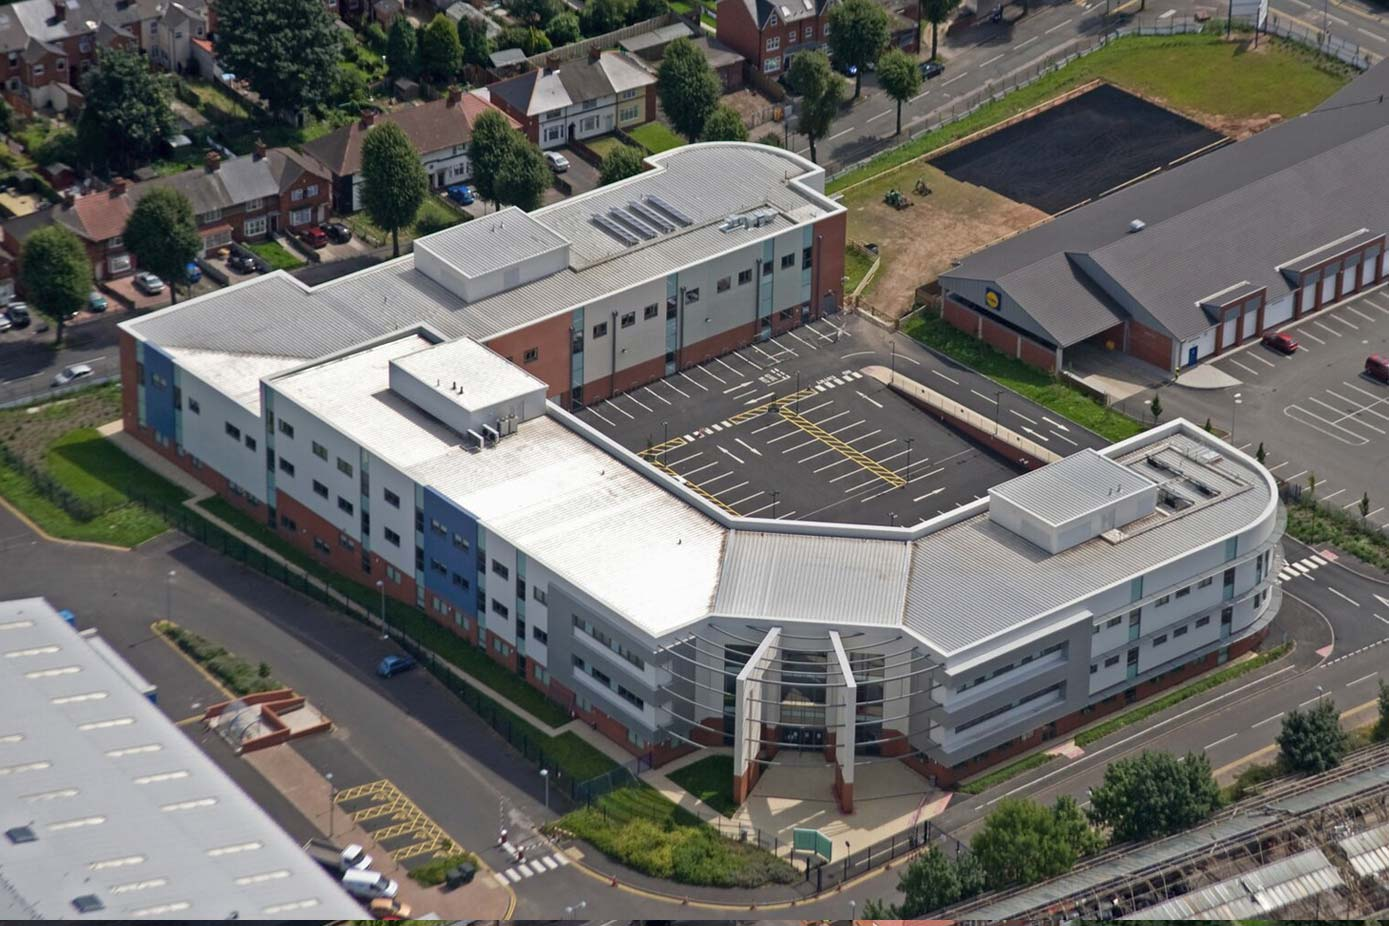 Exterior view of City College Birmingham